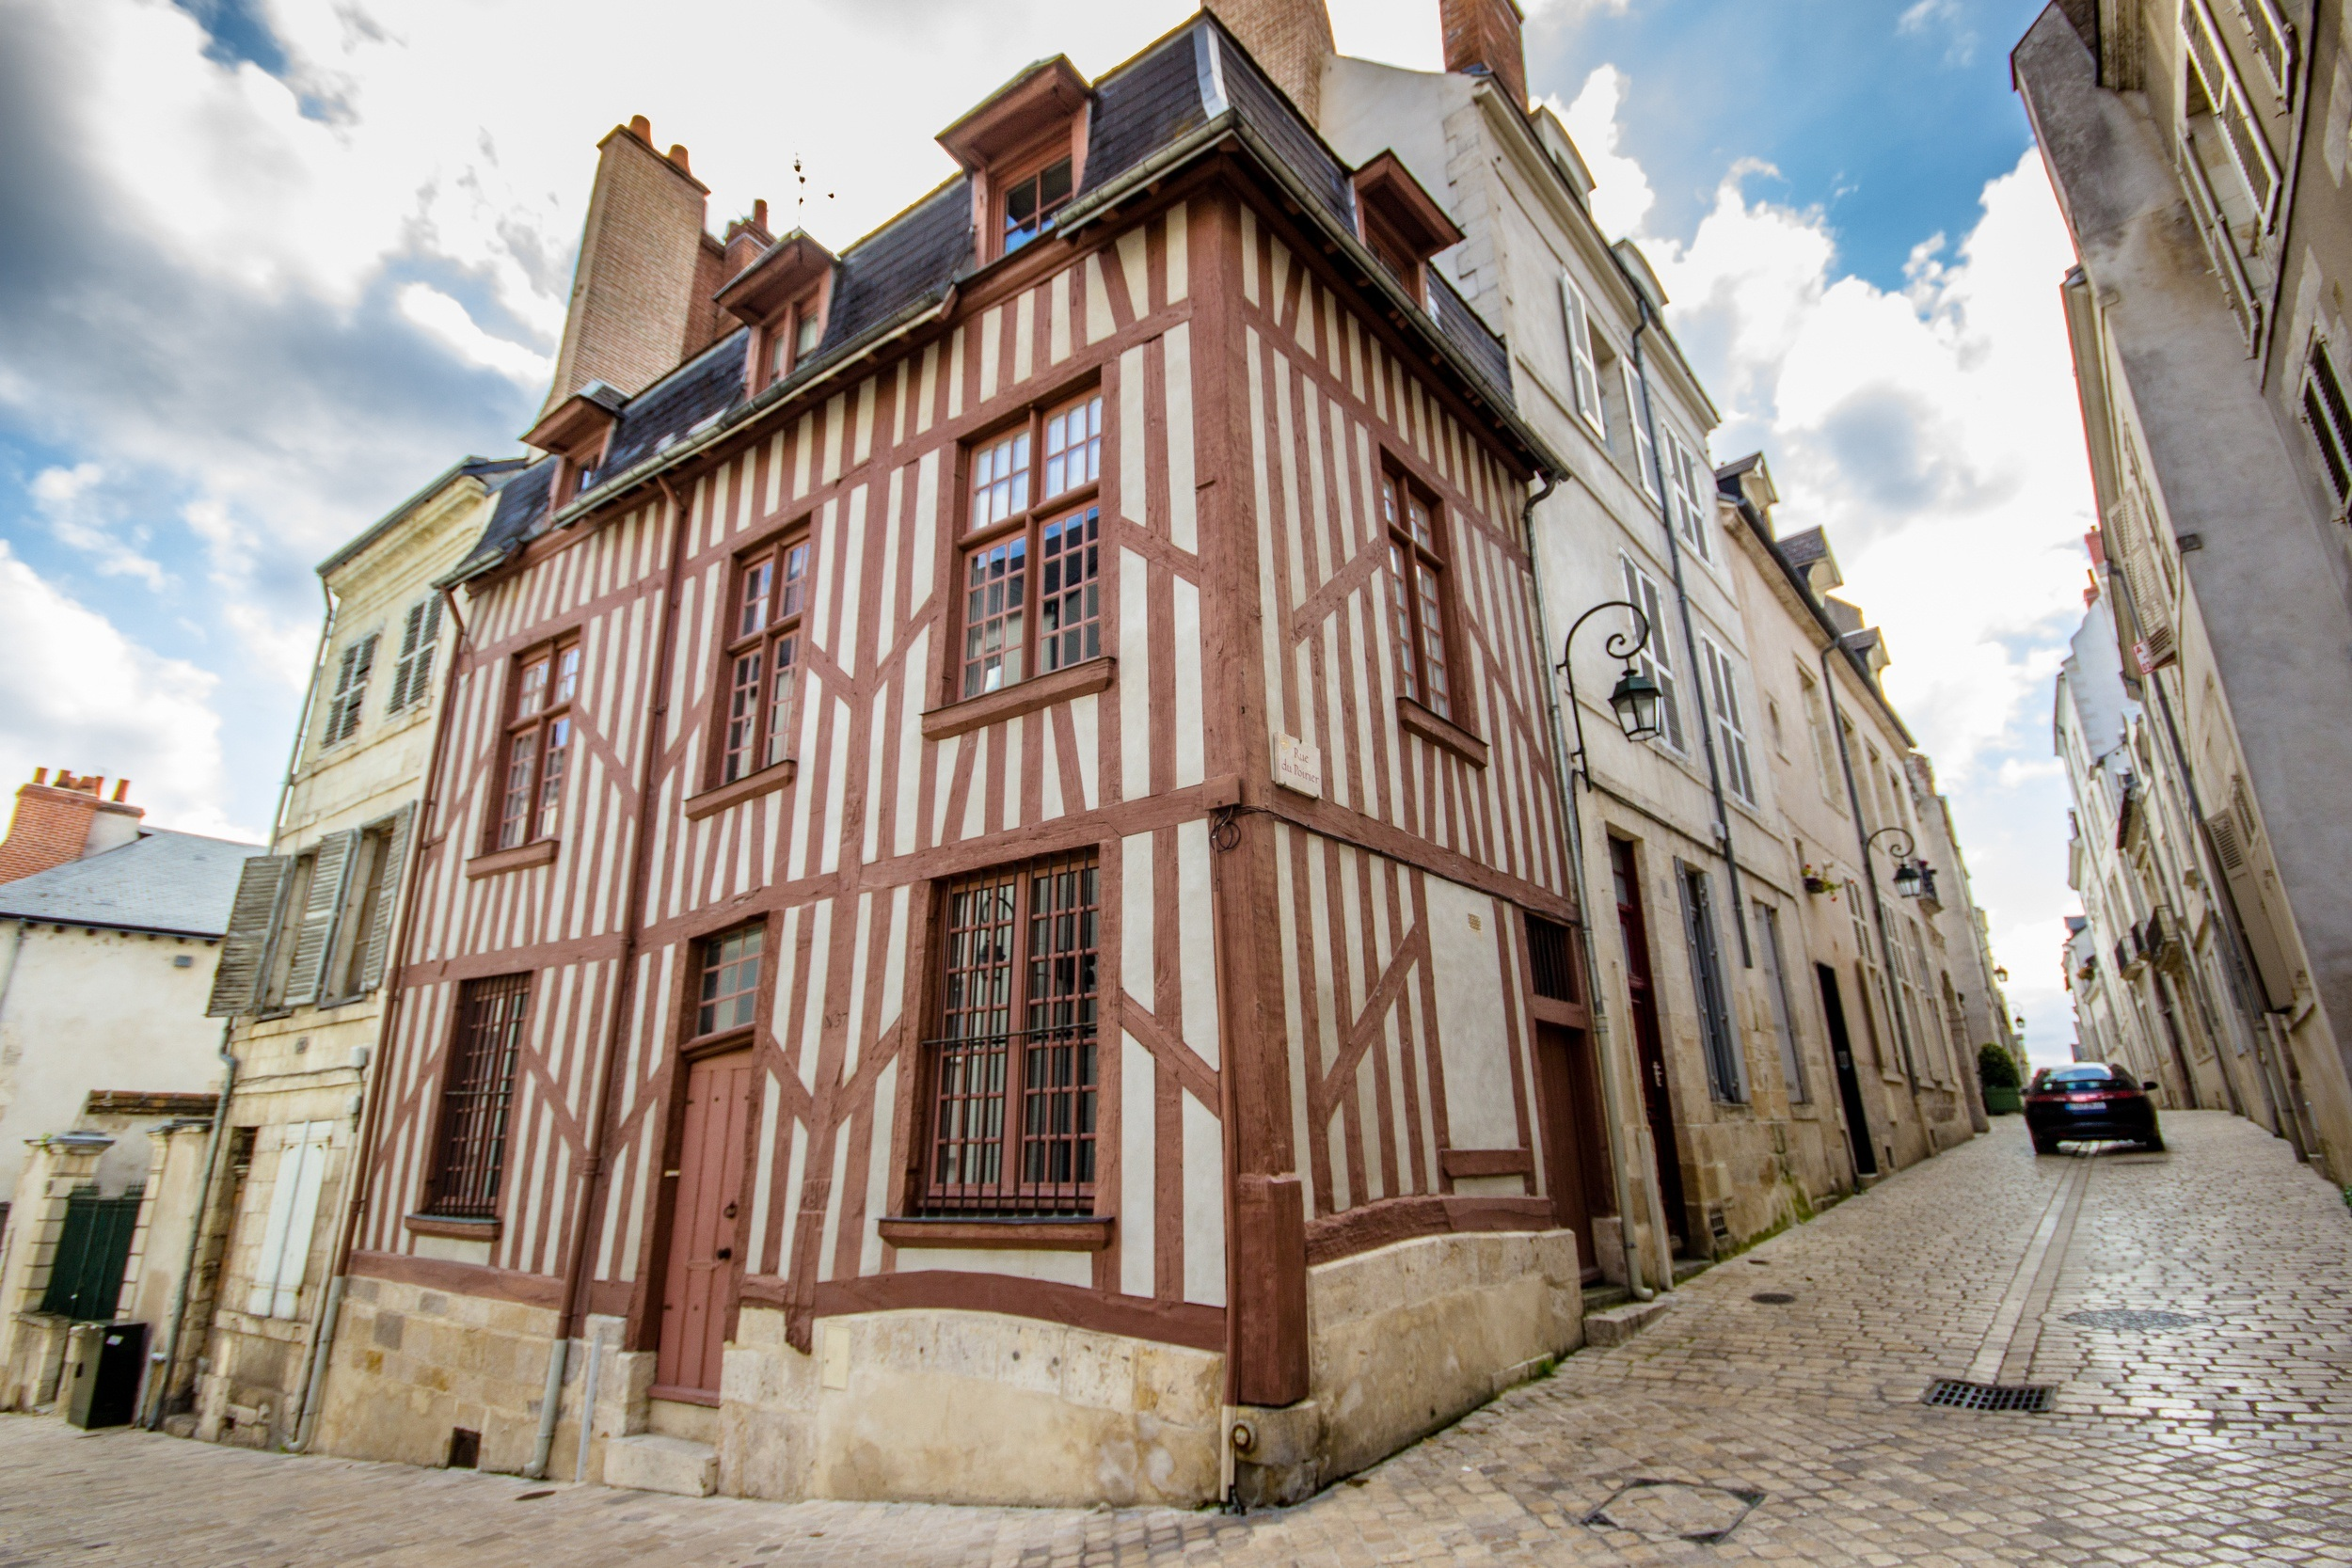 Timber houses in Orleans, France